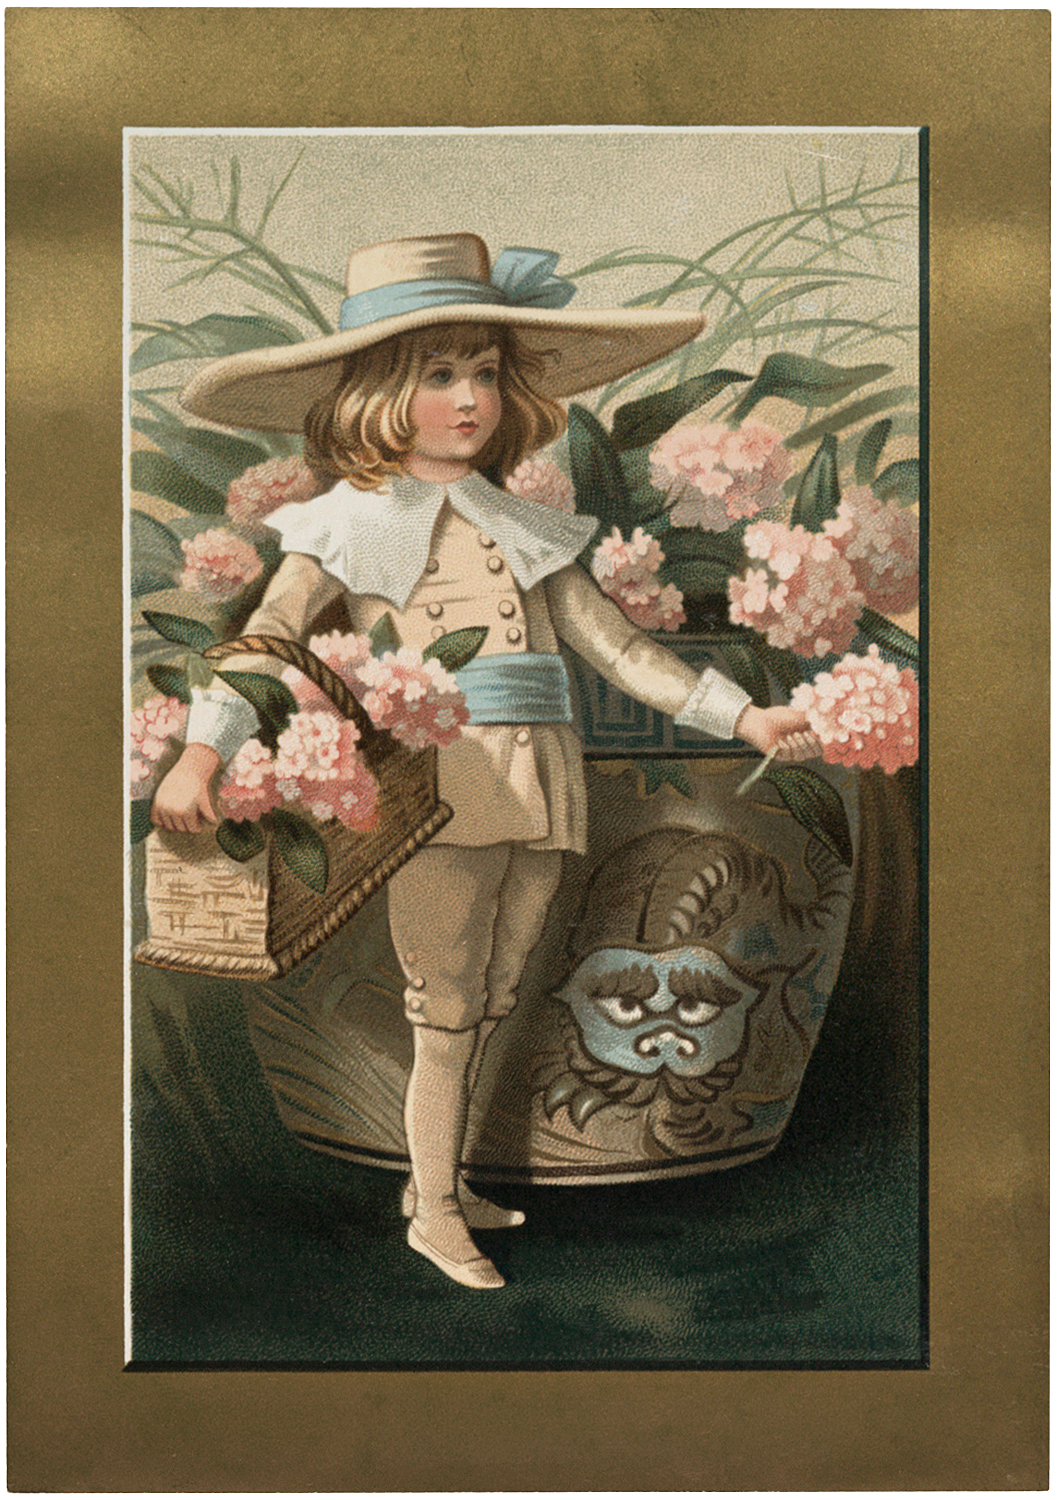 Vintage Flowers Boy Image